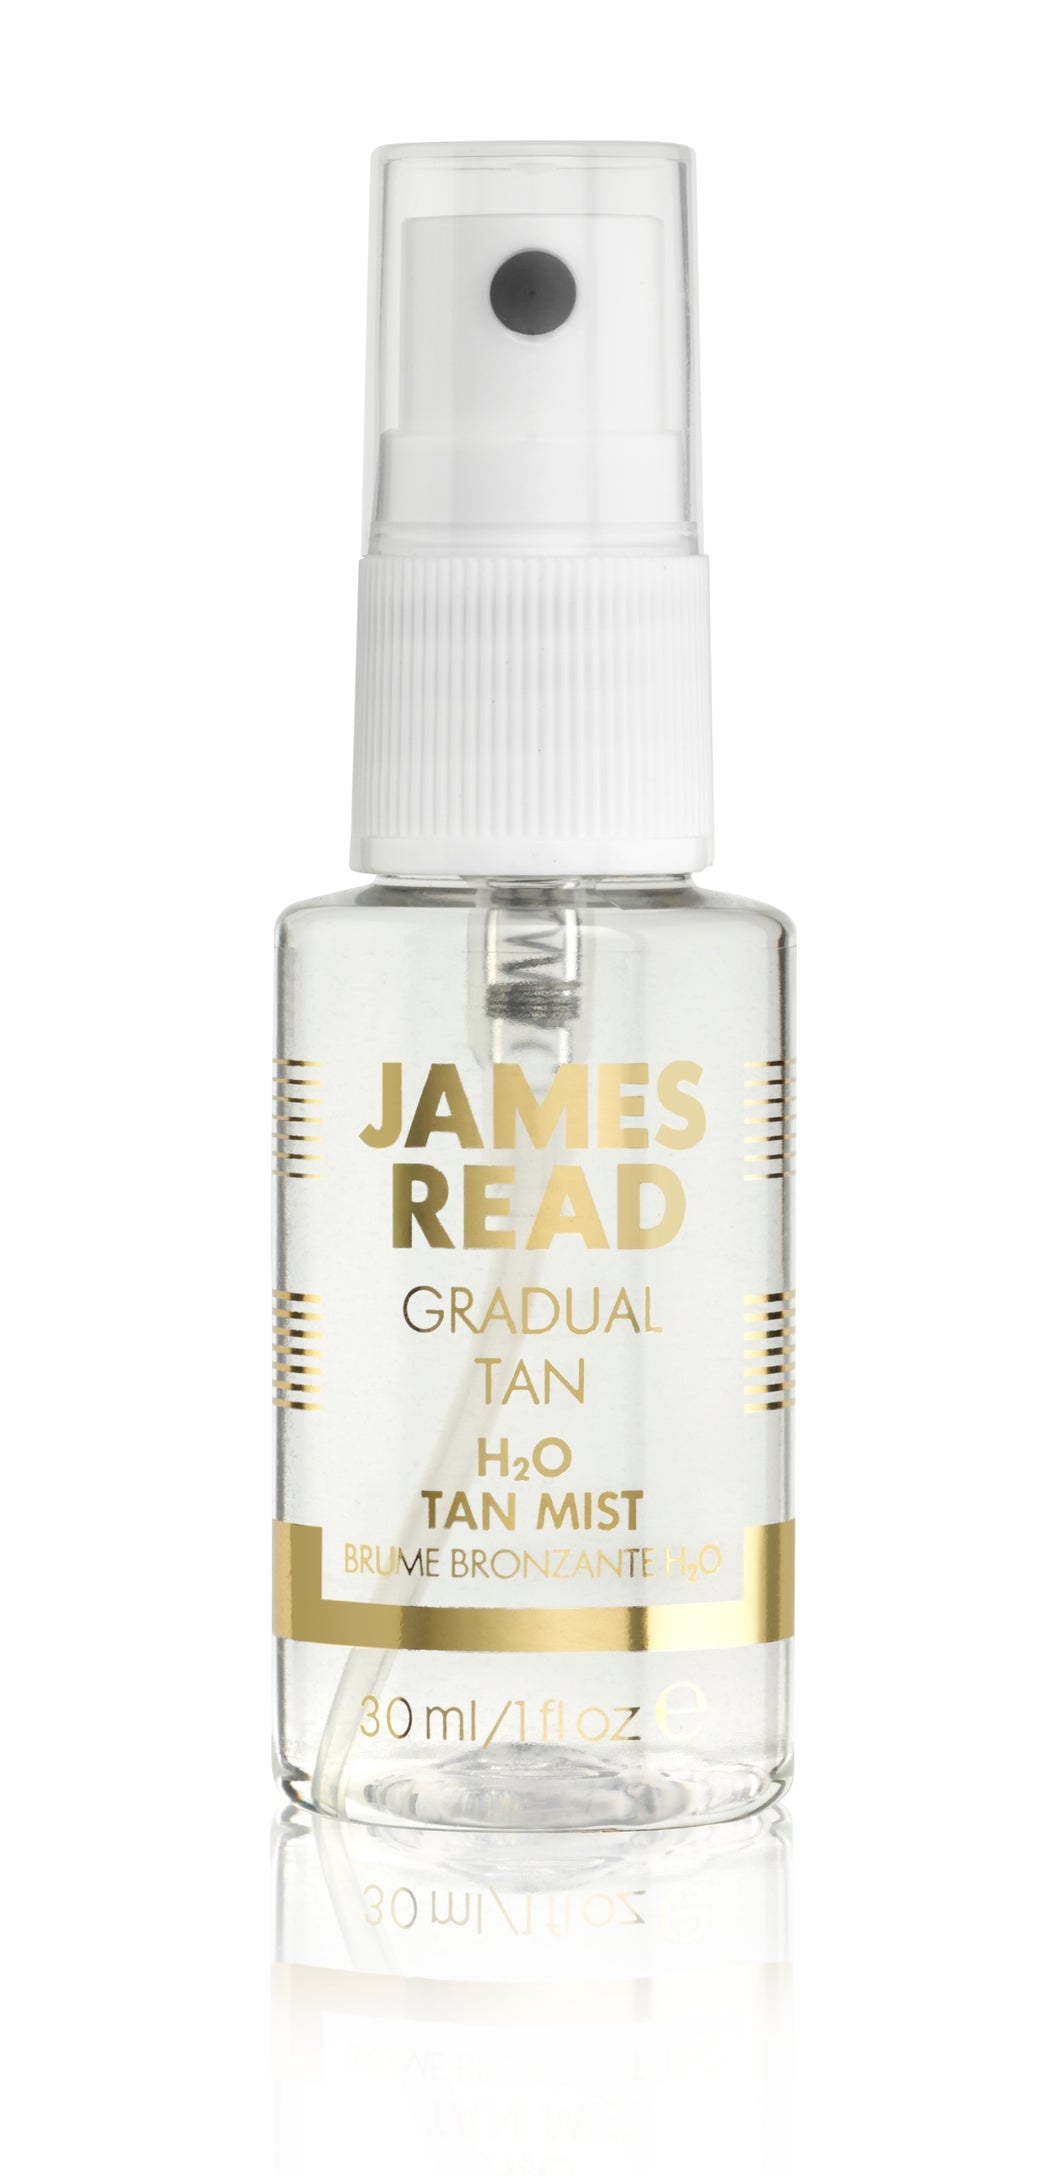 H2O Tan Mist Face (Mini Spray)